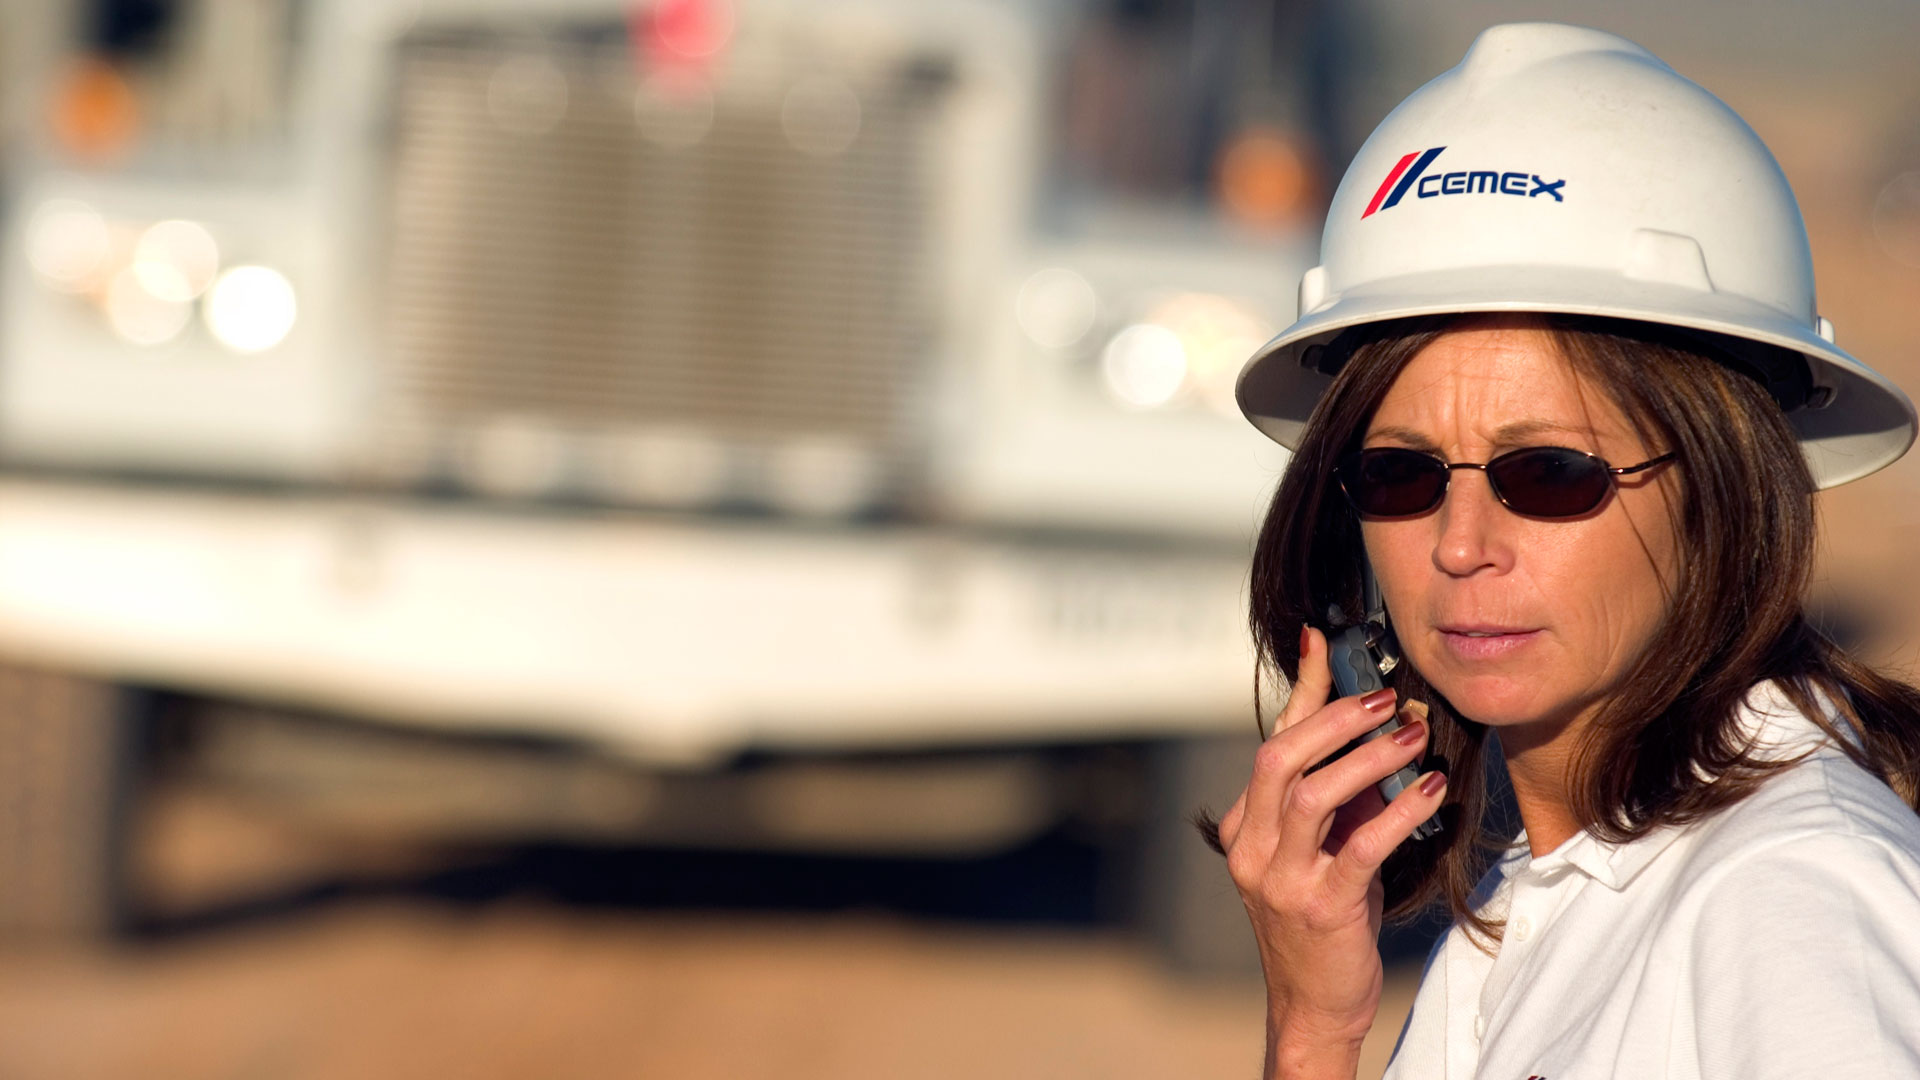 CEMEX Participates in Women's Forum at International Concrete Sustainability Conference